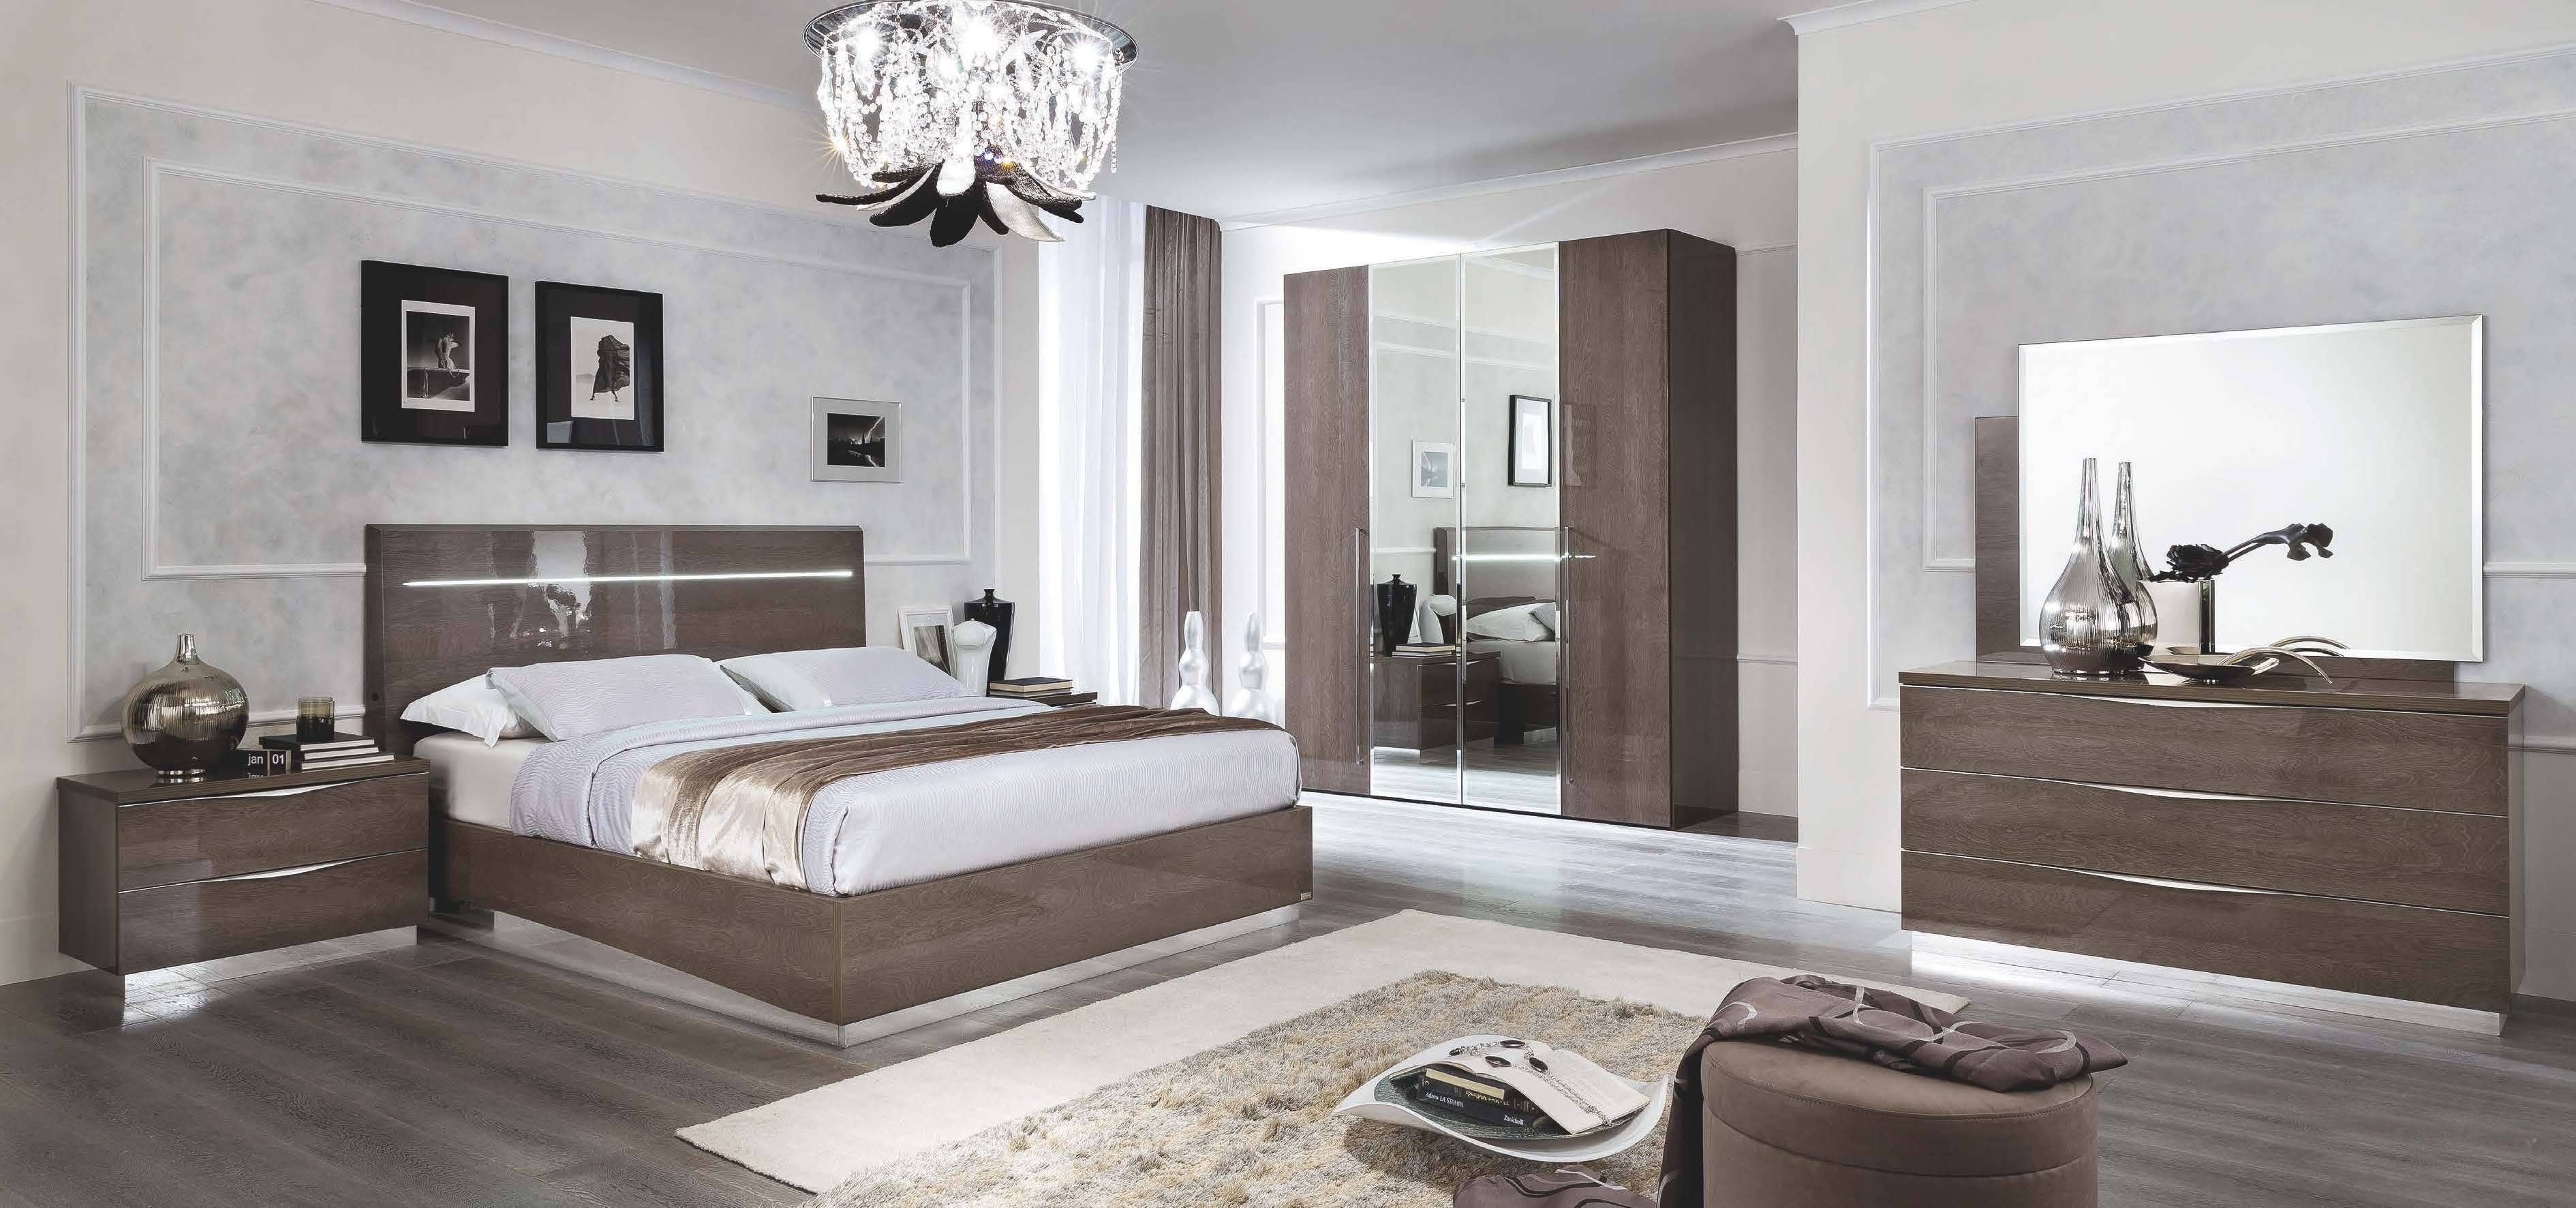 White Contemporary Bedroom Furniture Elegant Made In Italy Quality High End Bedroom Sets